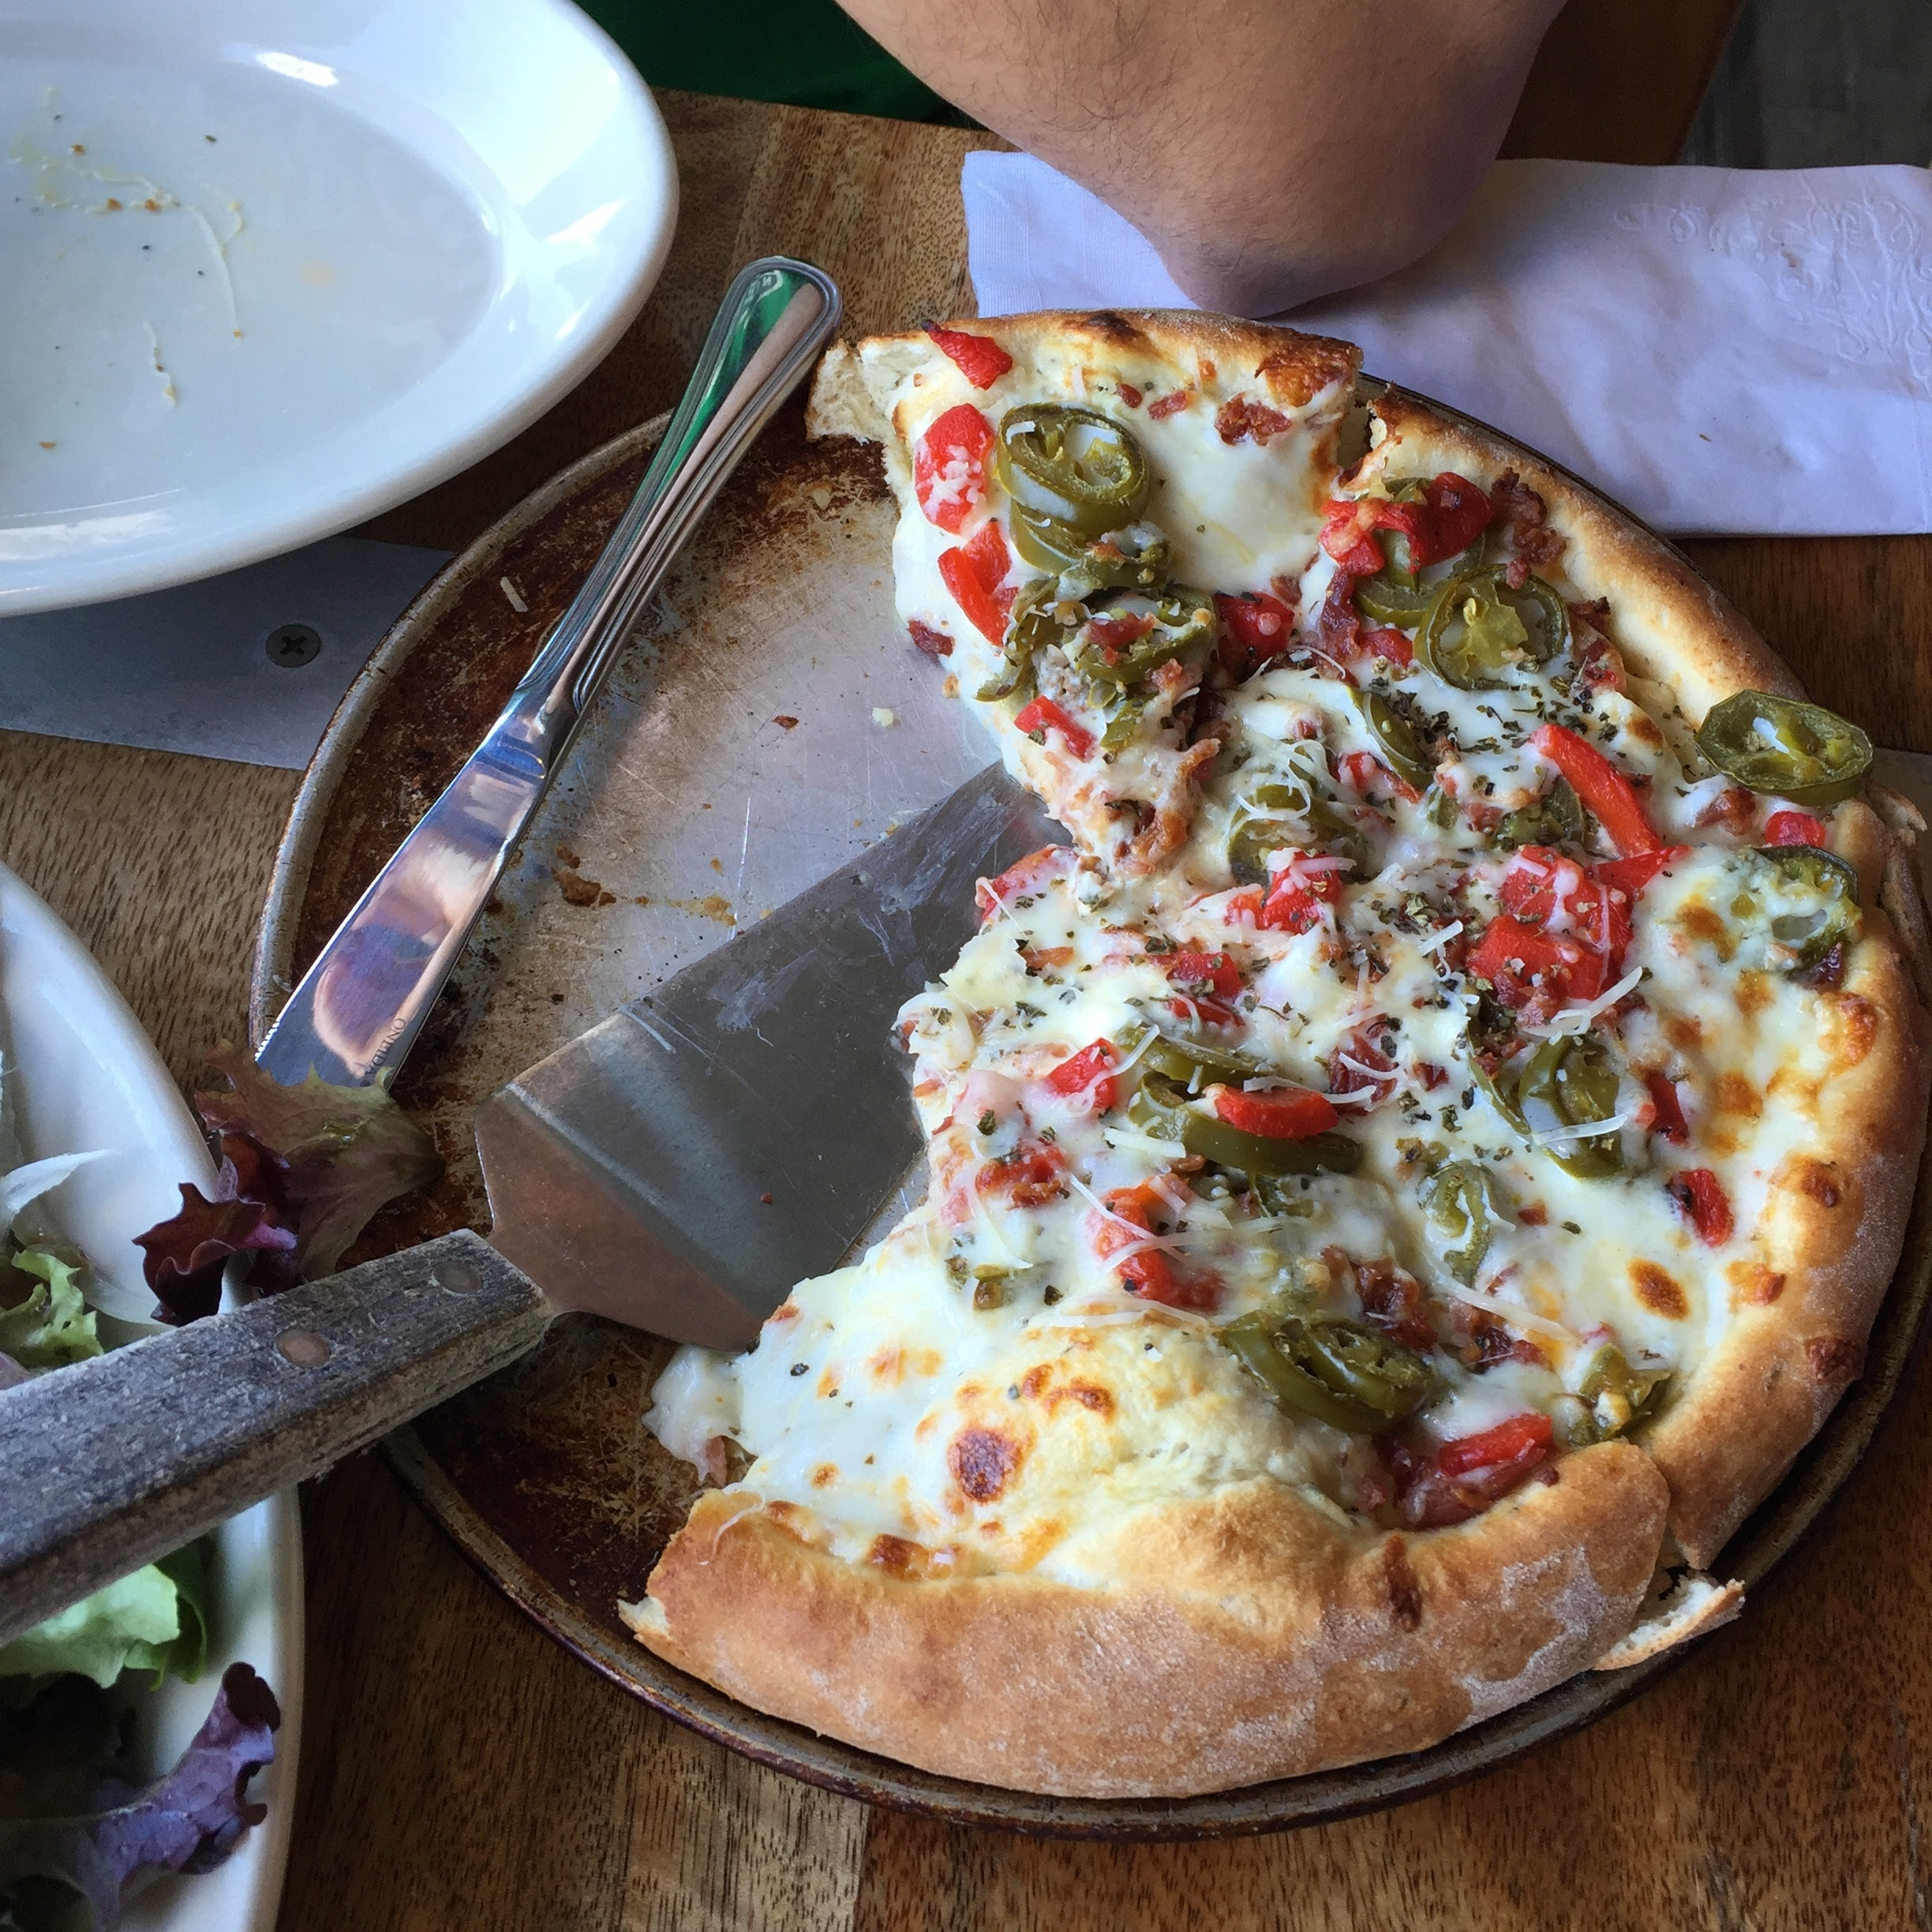 Pizza at Kona Brewing Company in Honolulu, Hawaii // via Jitney's Jourenys